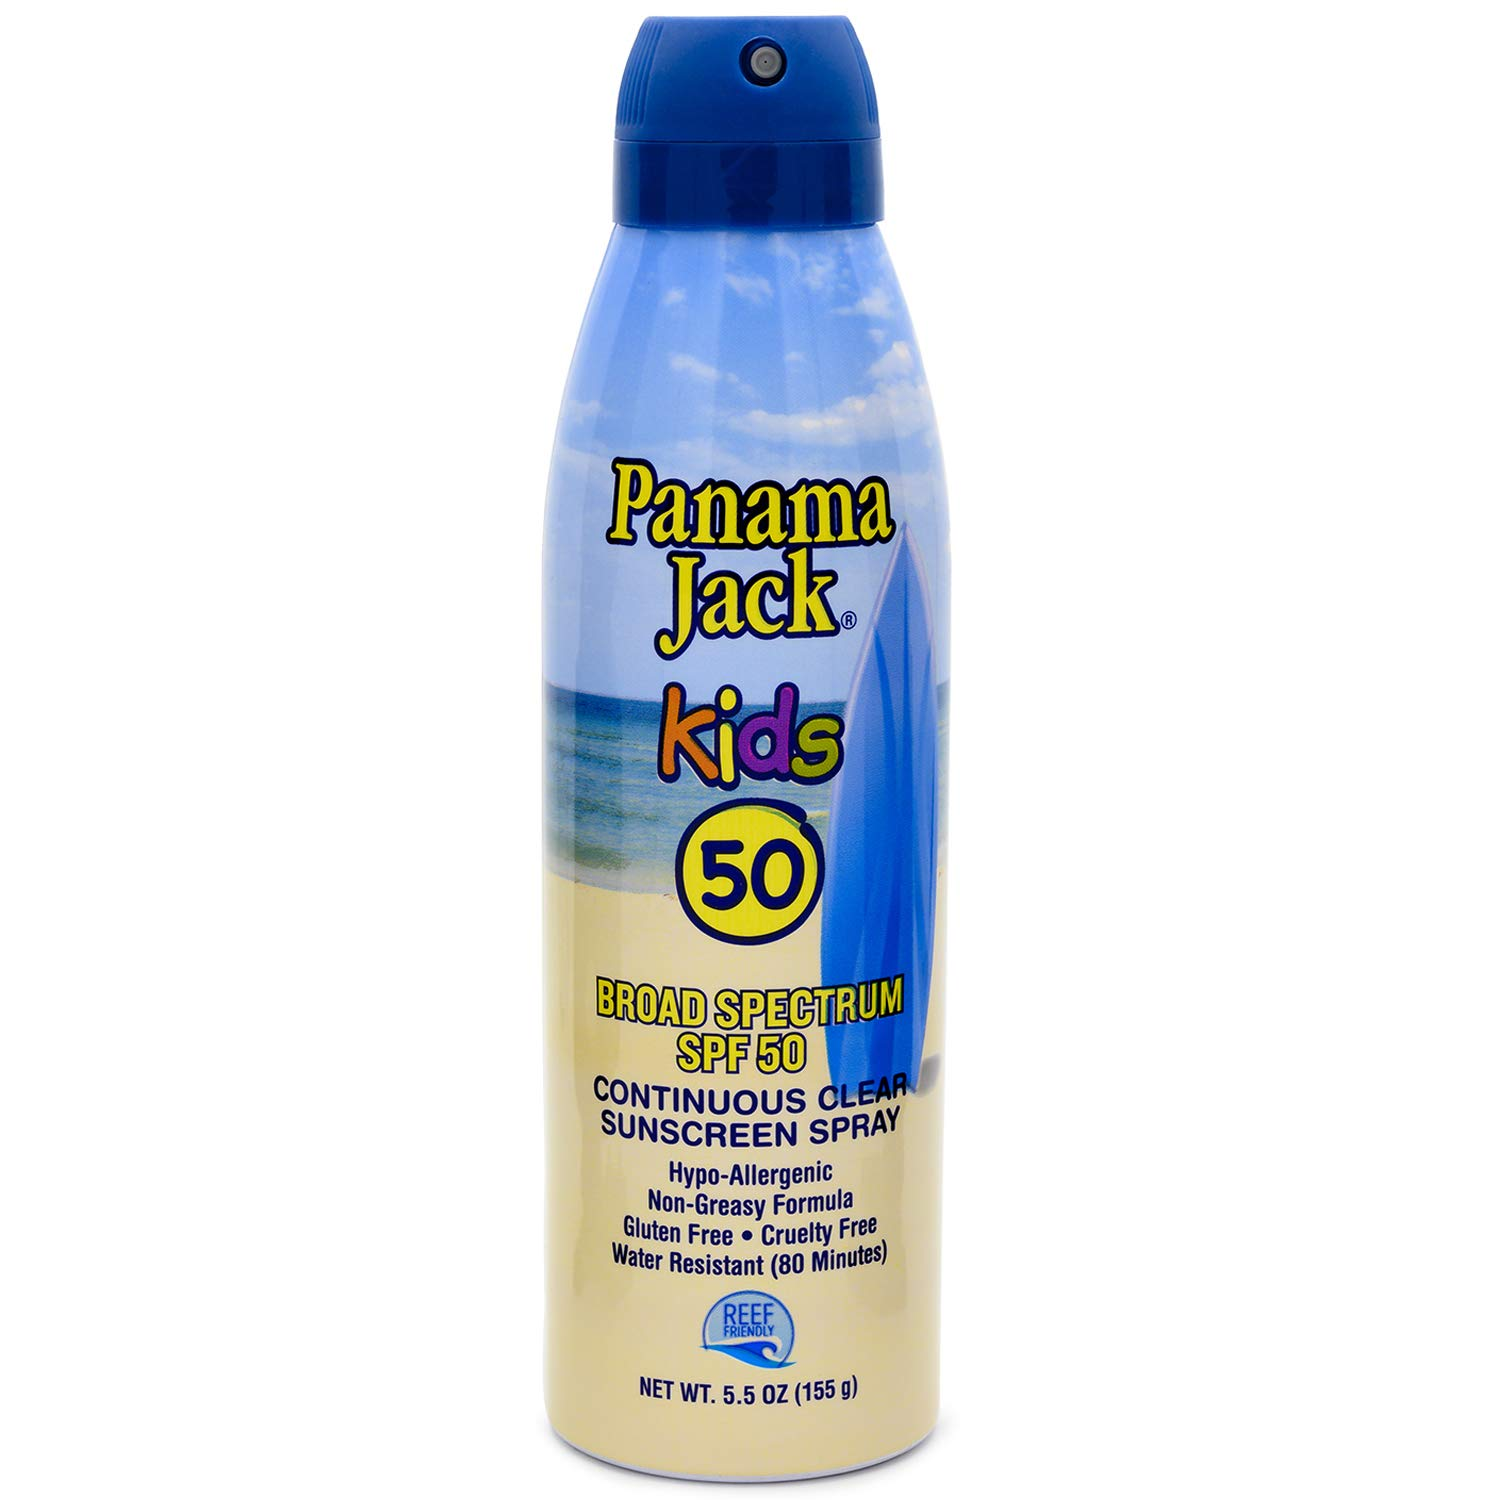 Panama Jack Baby and Kids Sunscreens Multi-Packs (Pack of 6, Continuous Spray Kids Sunscreen)